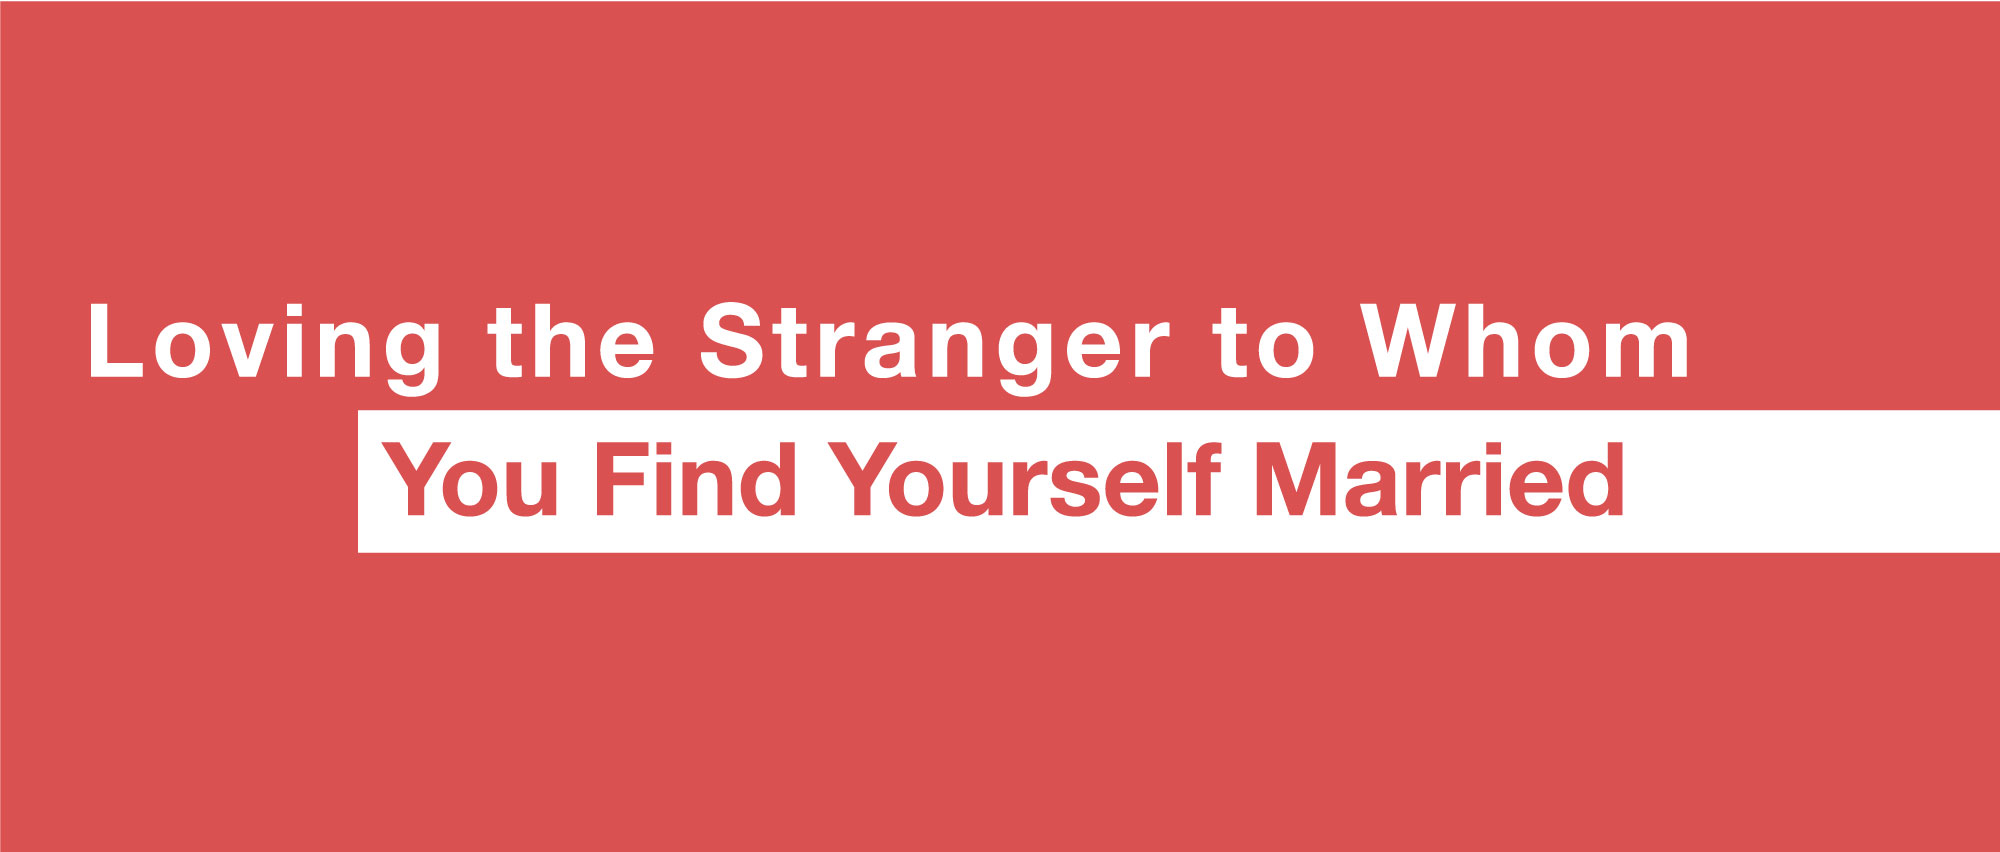 loving-the-stranger-to-whom-you-find-yourself-married.jpg